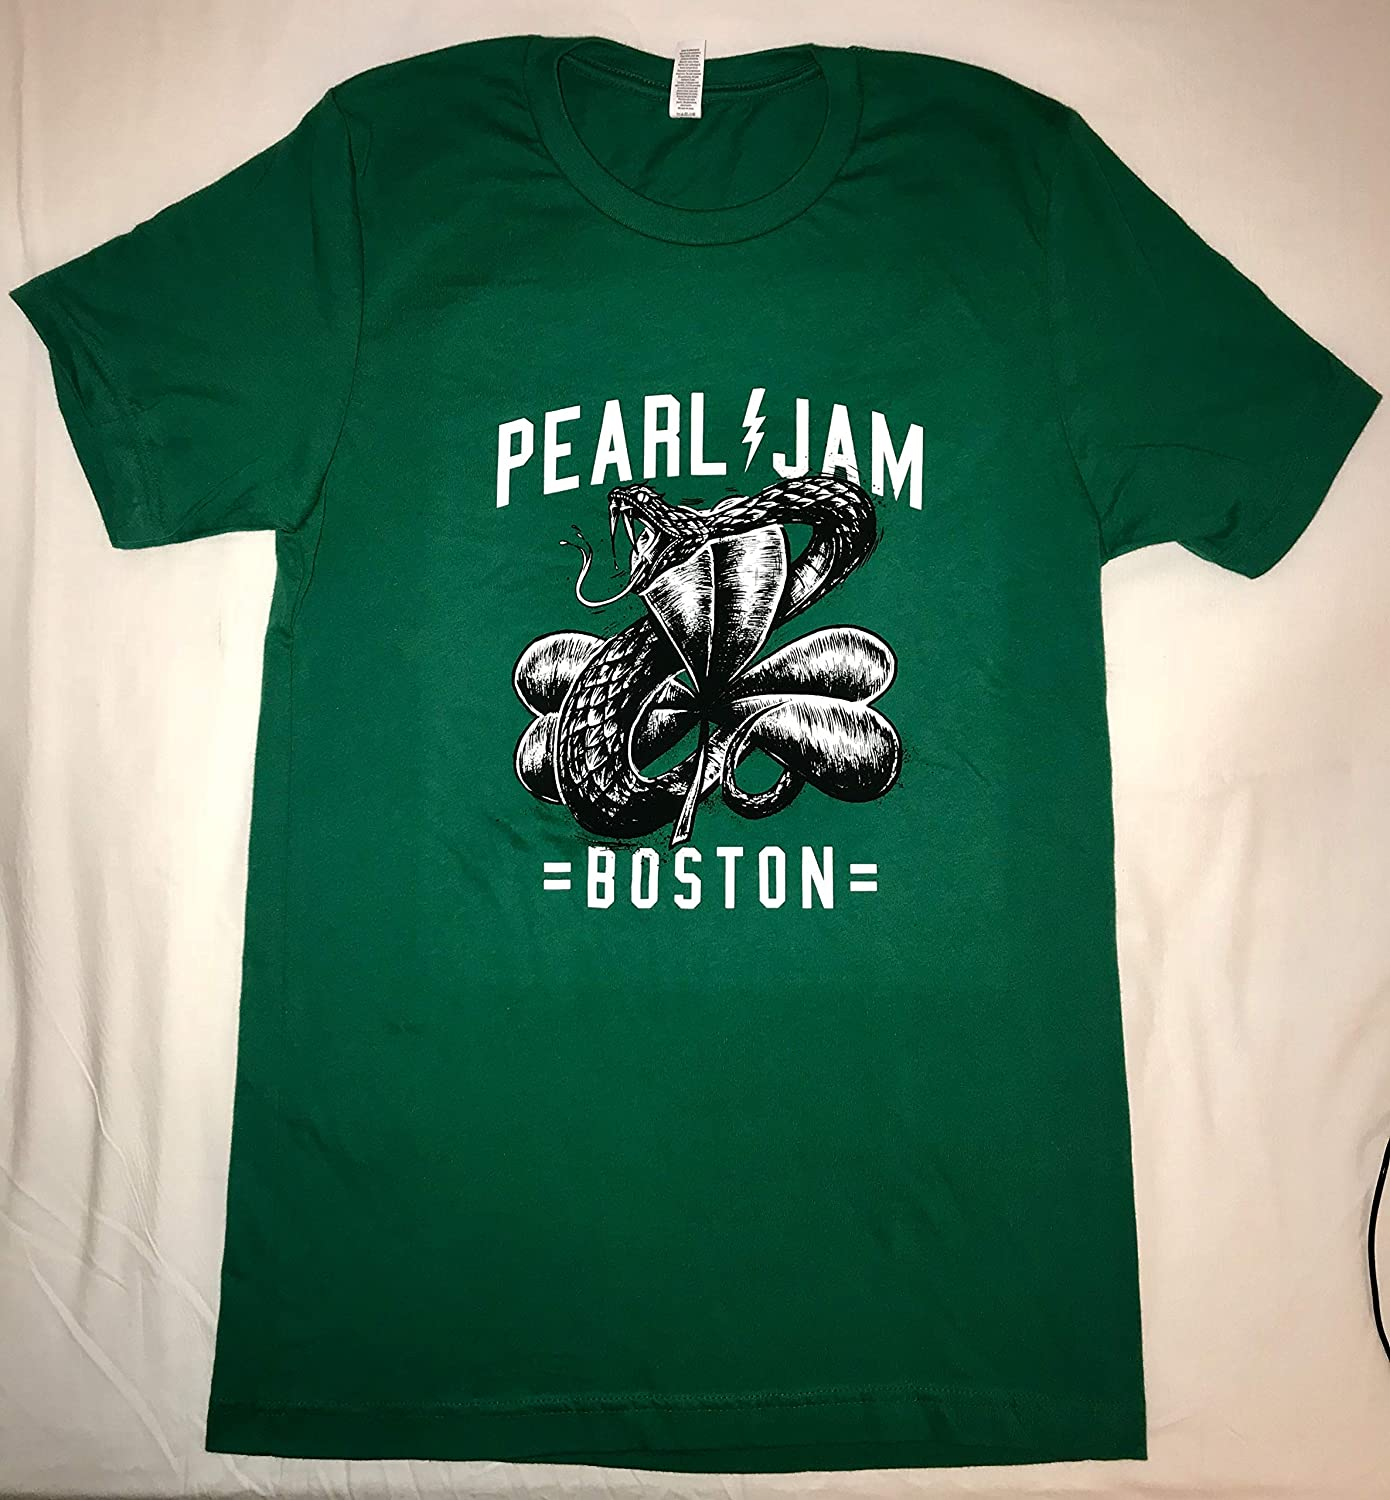 Pearl Jam t shirt boston fenway park snake clover green xxl 2x 2018 tour pj concert t-shirt new